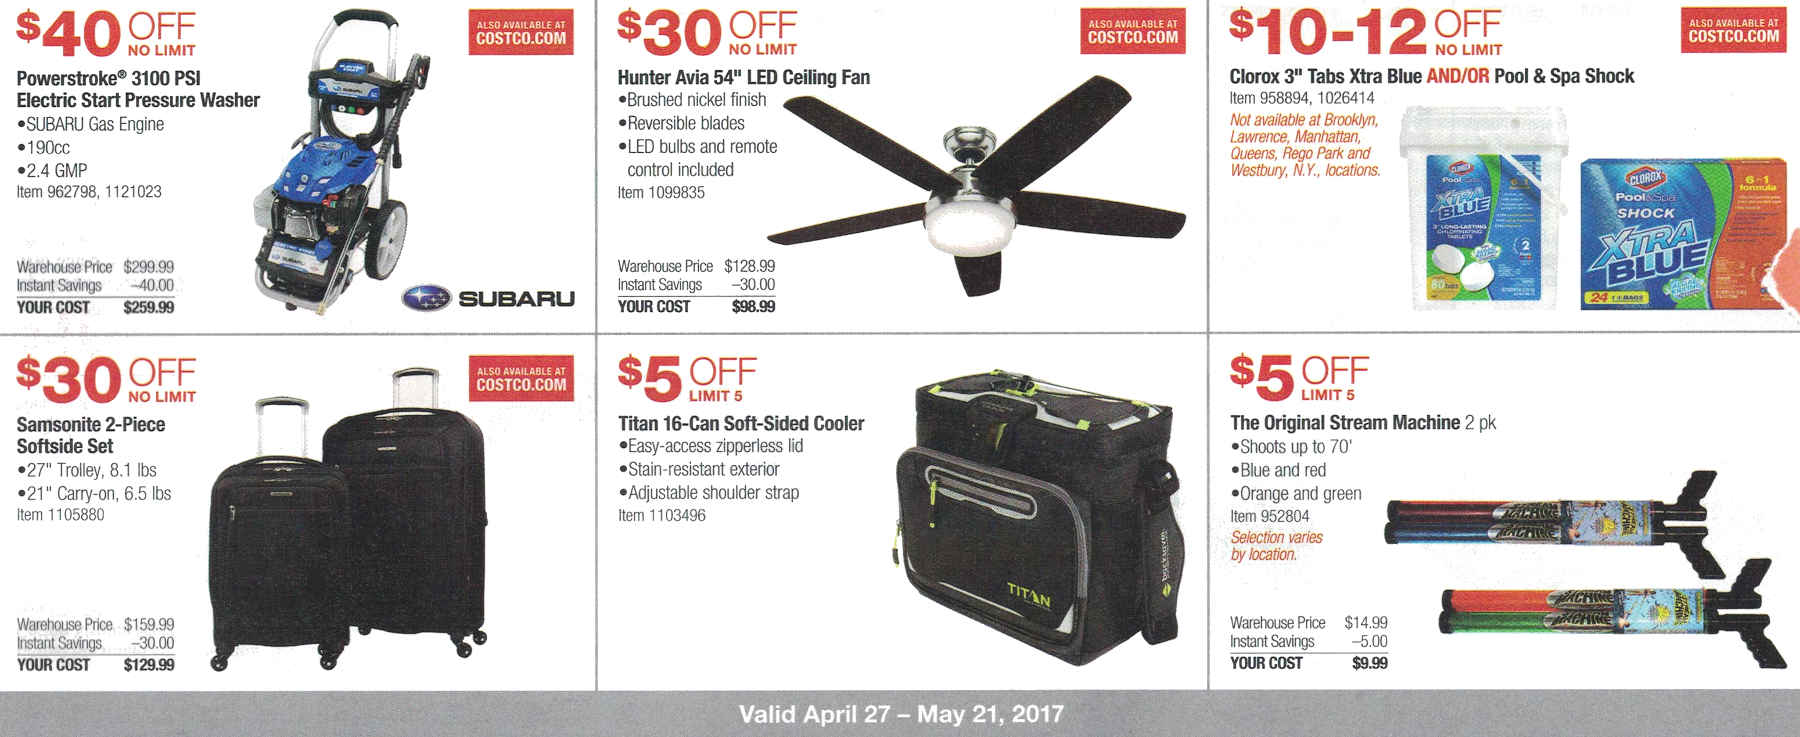 Costco May 2017 Coupon Book Page 3